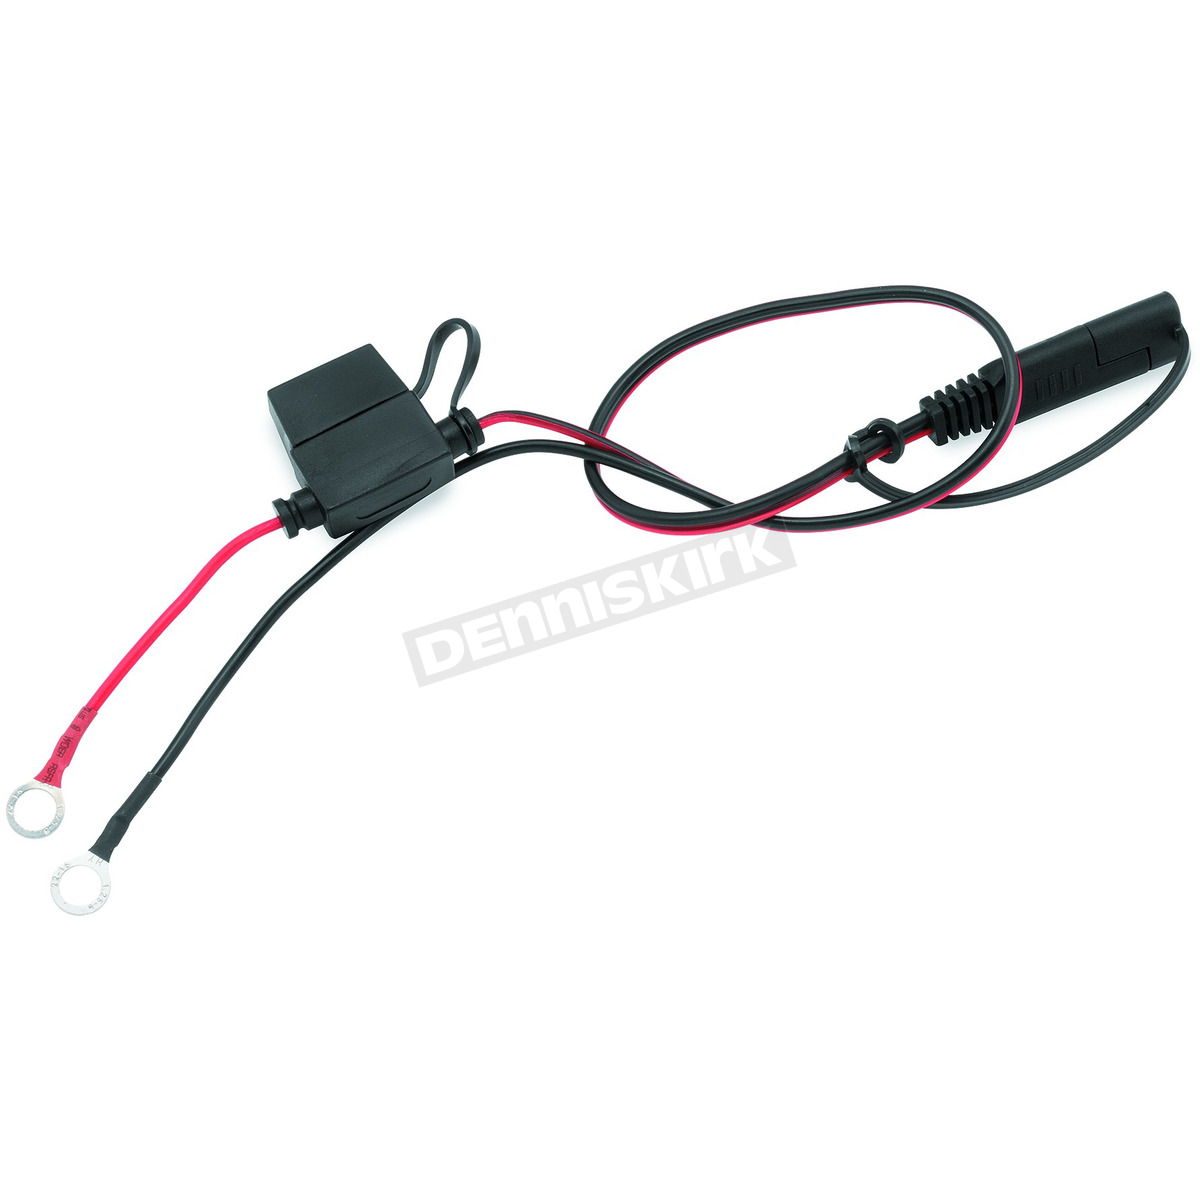 BikeMaster Replacement Quick Connect Wire Harness W/Rings for Battery  Charger/Maintainers - 0603